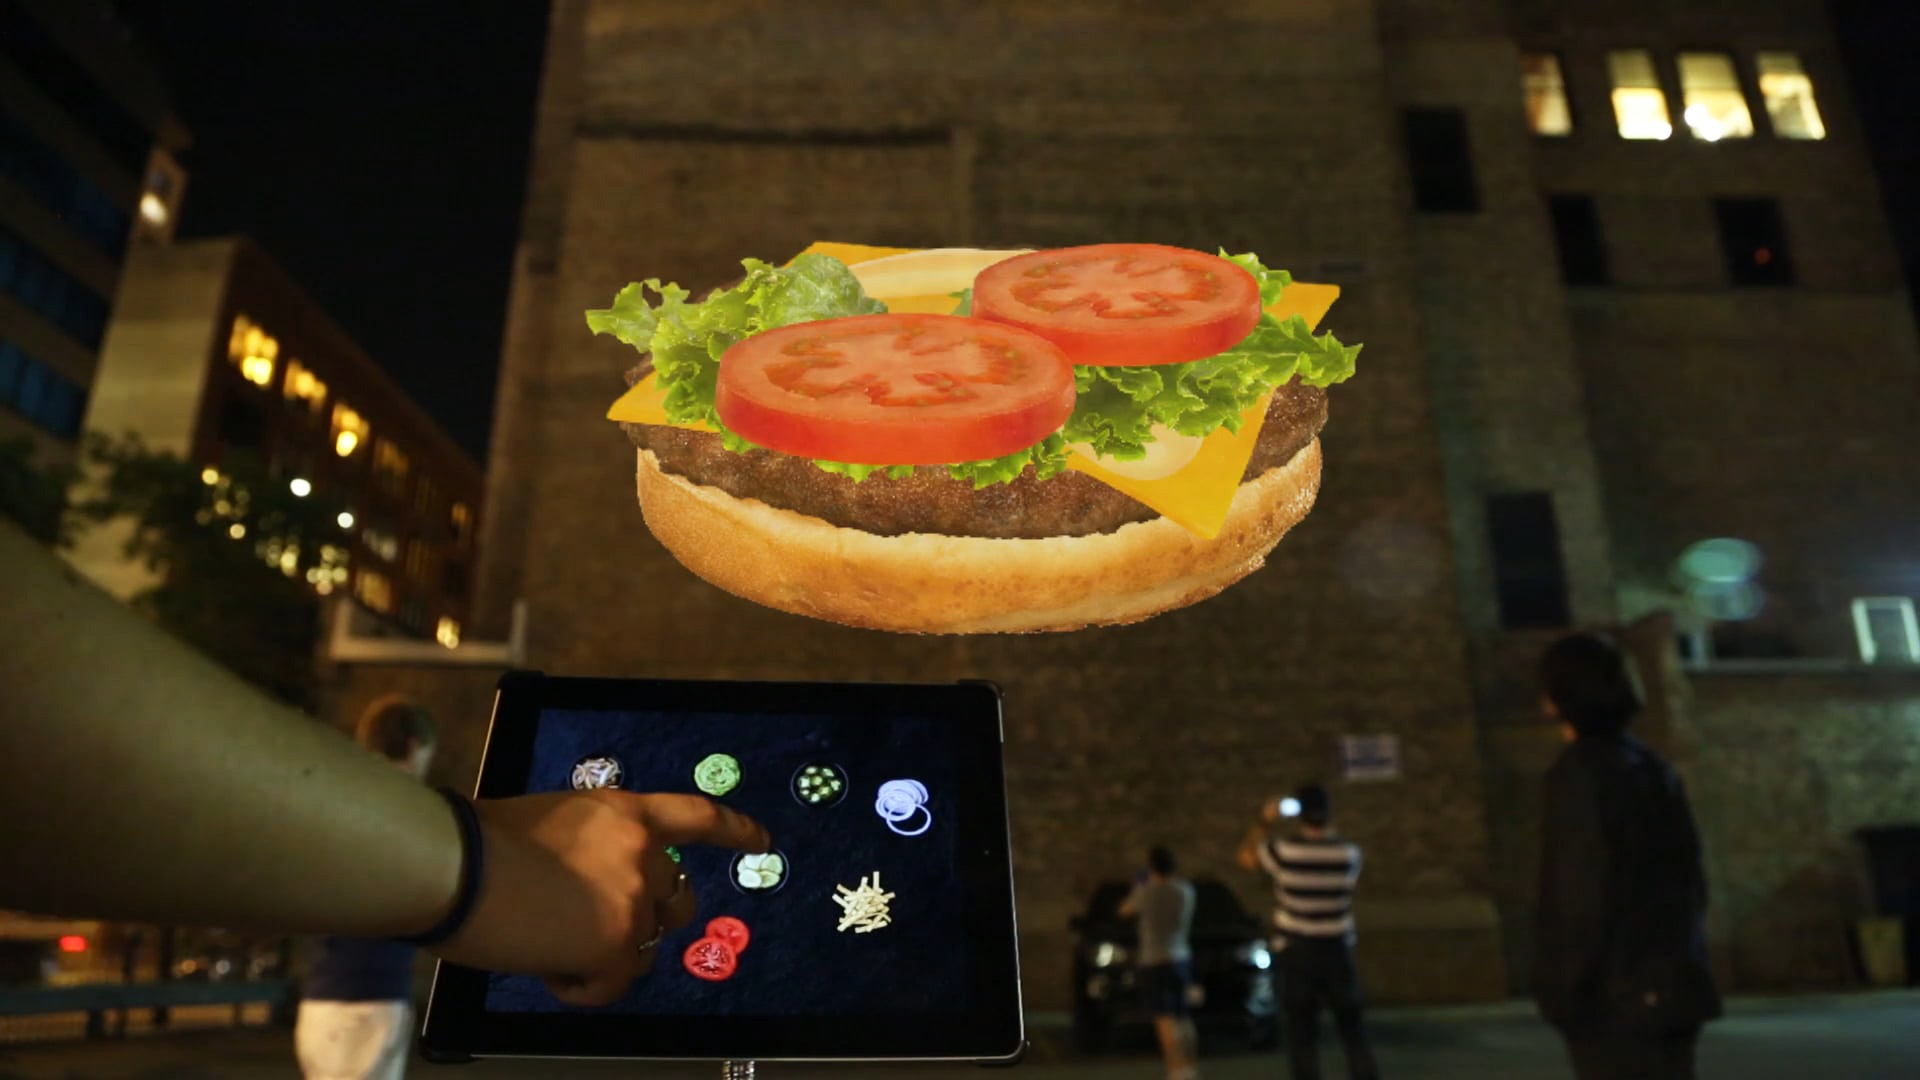 McDonald's - Giant Virtual Burger Builder